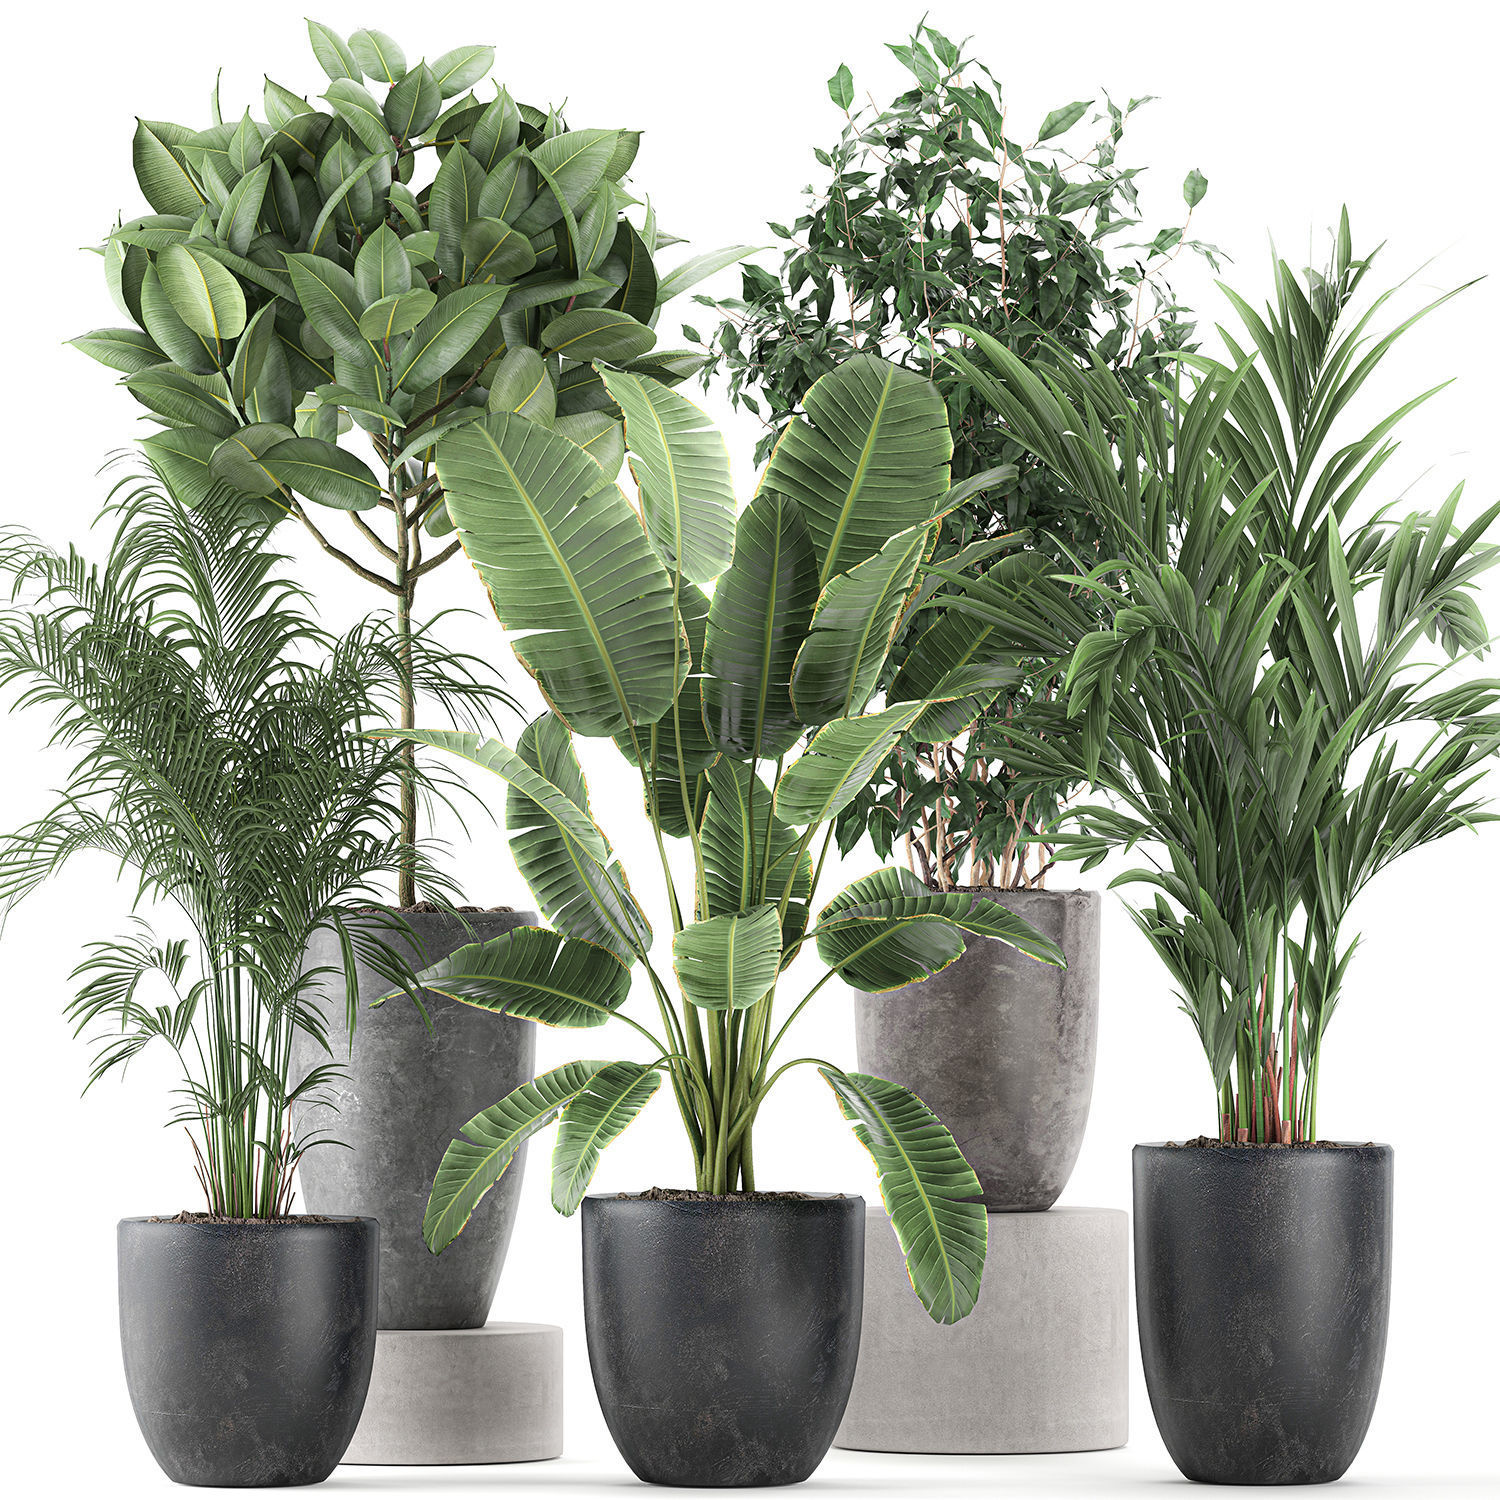 Decorative plants for the interior in flowerpots 610